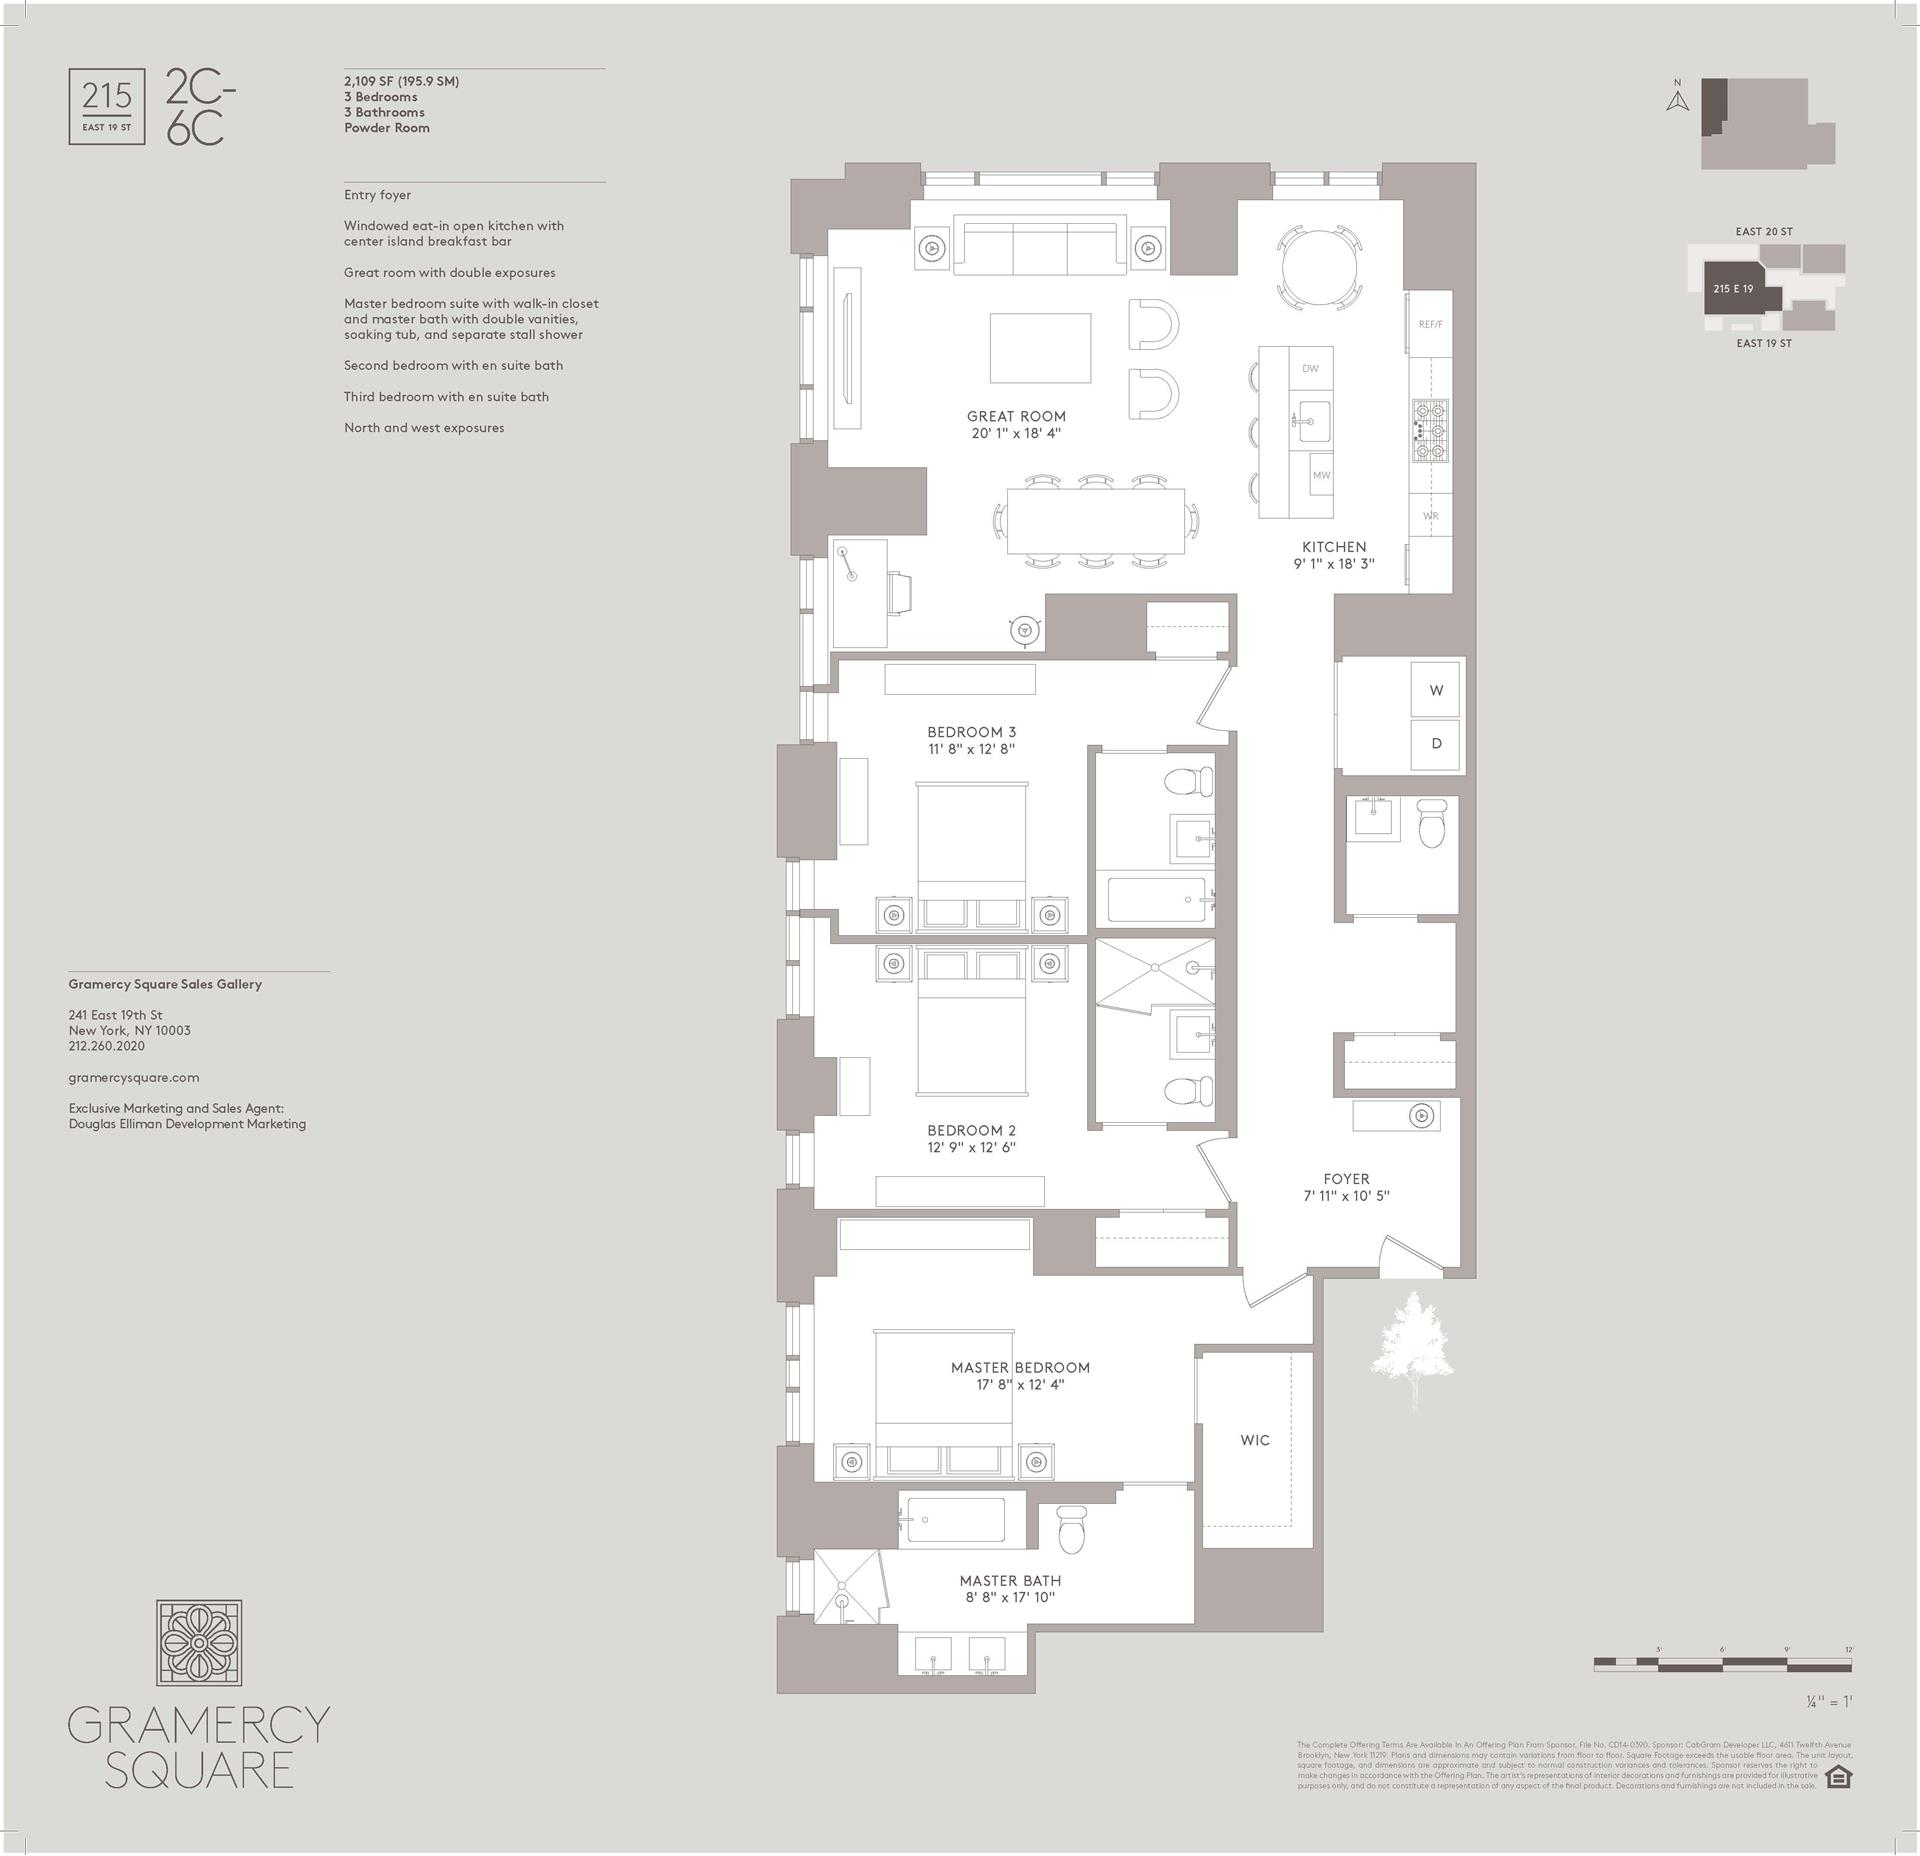 Floor plan of Gramercy Square, 215 East 19th St, 2C - Gramercy - Union Square, New York